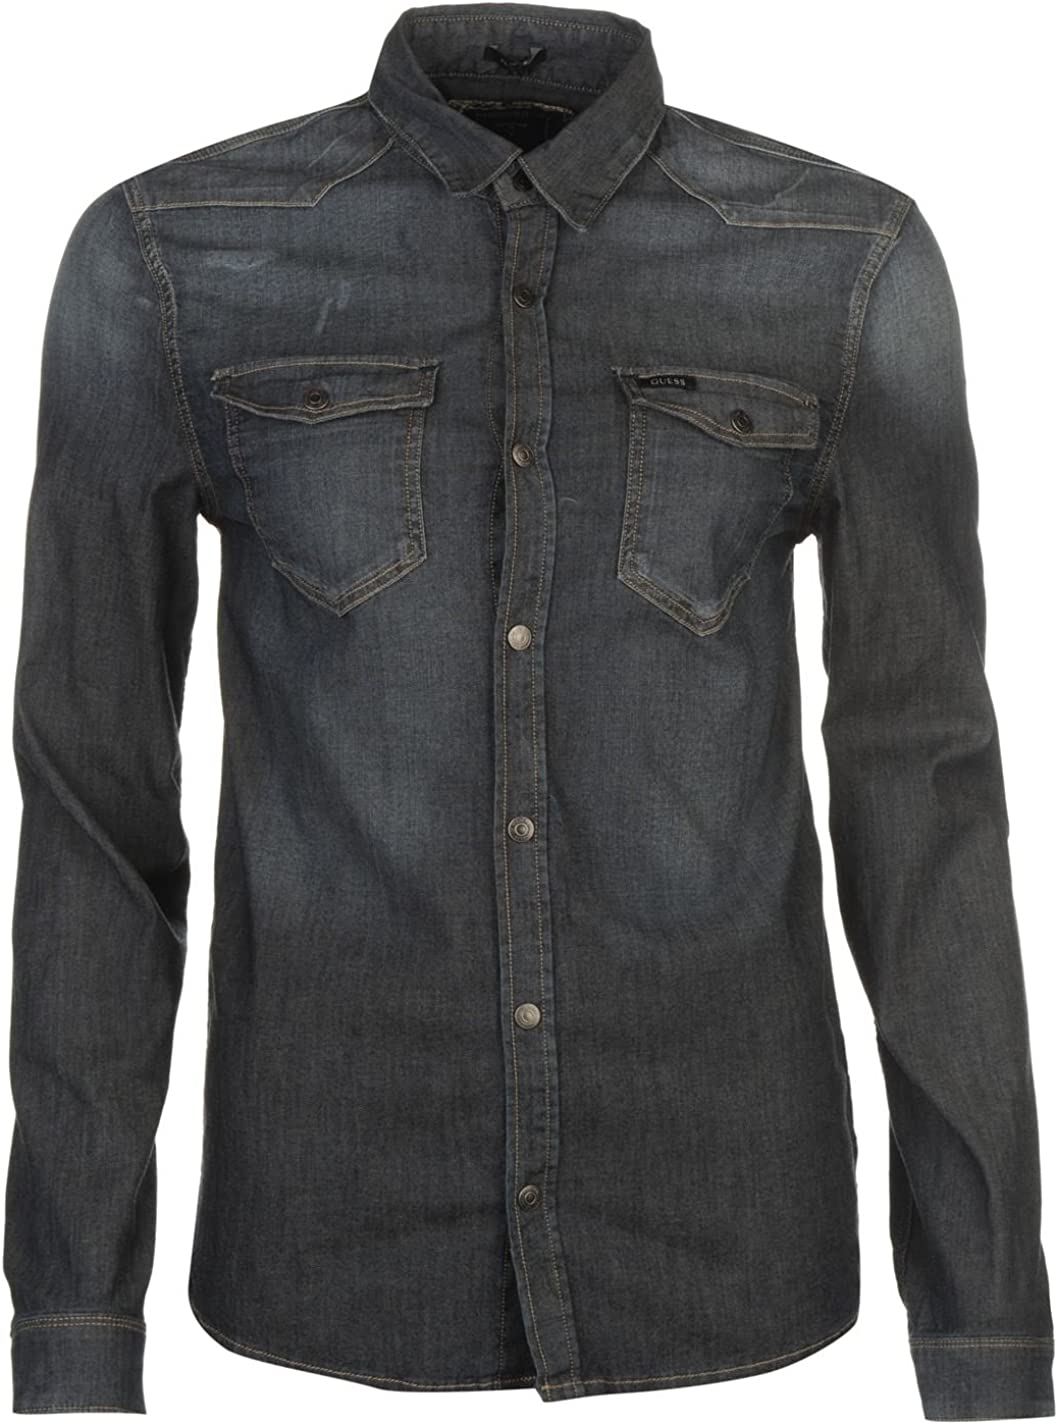 Guess Hombre Truckee Camisa Ropa Vestir Casual Mangas Largas ...